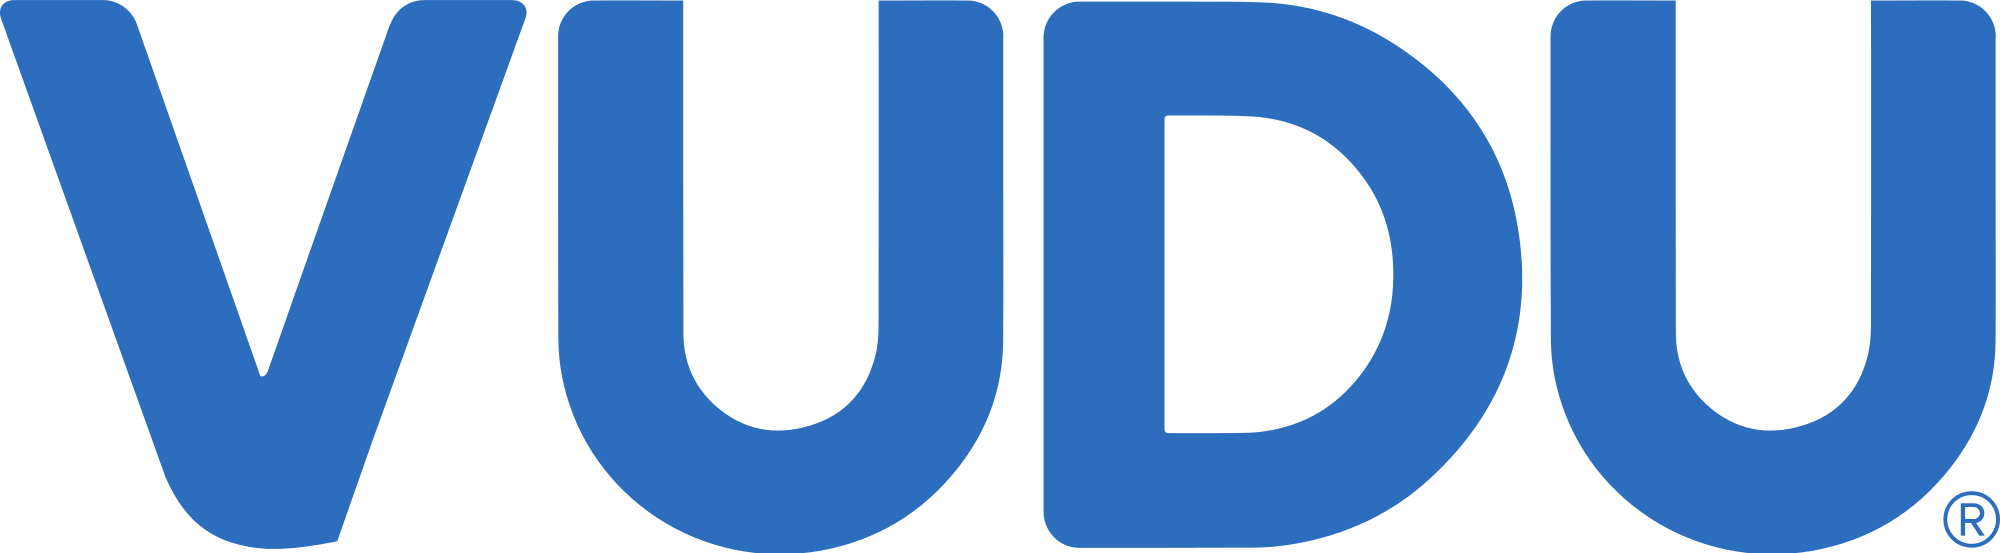 VUDU logo THE ADVENTURES OF AÇELA